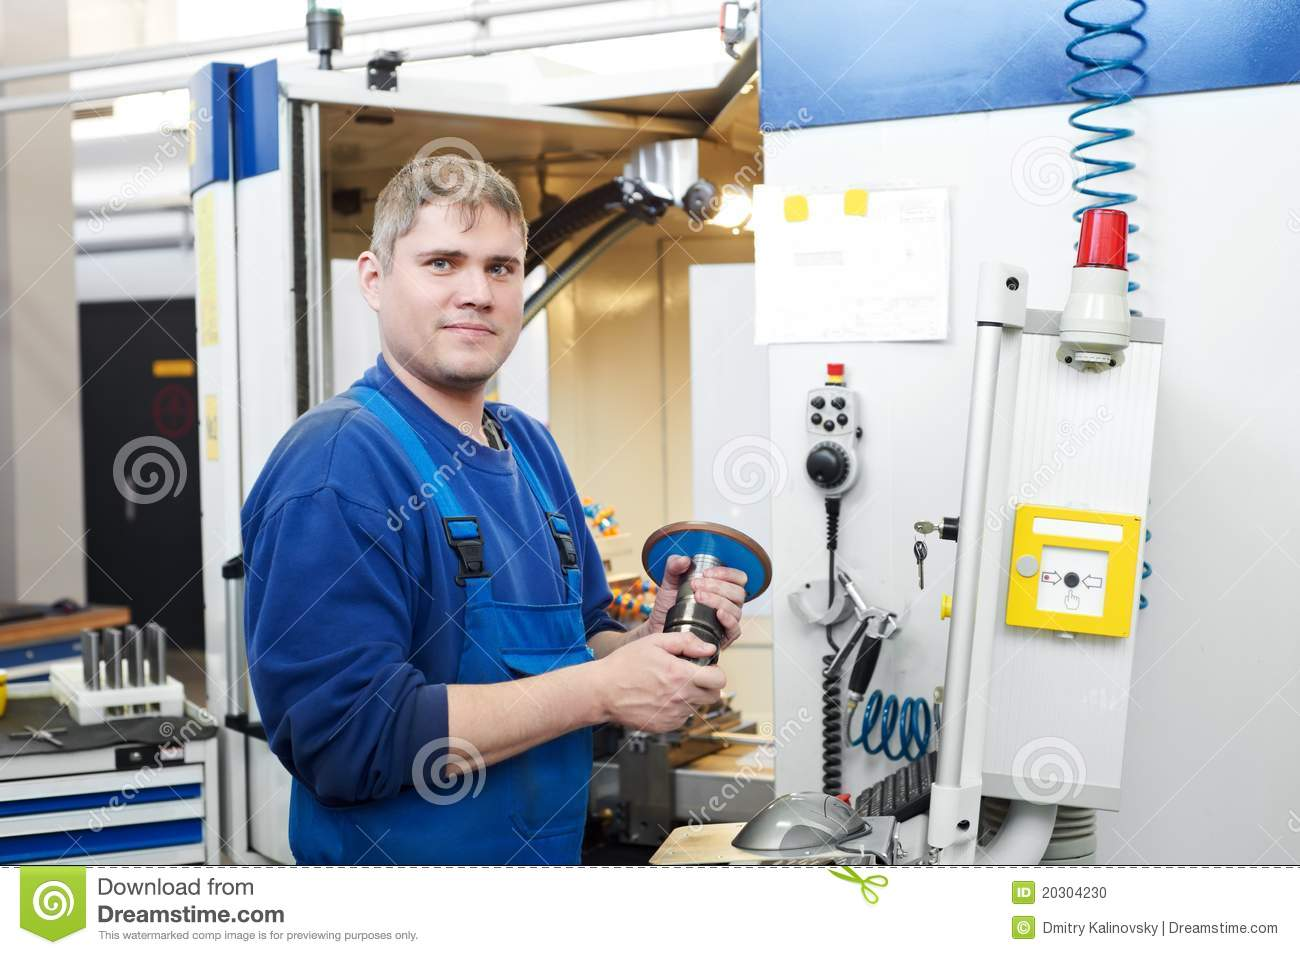 how to operate cnc milling machine pdf